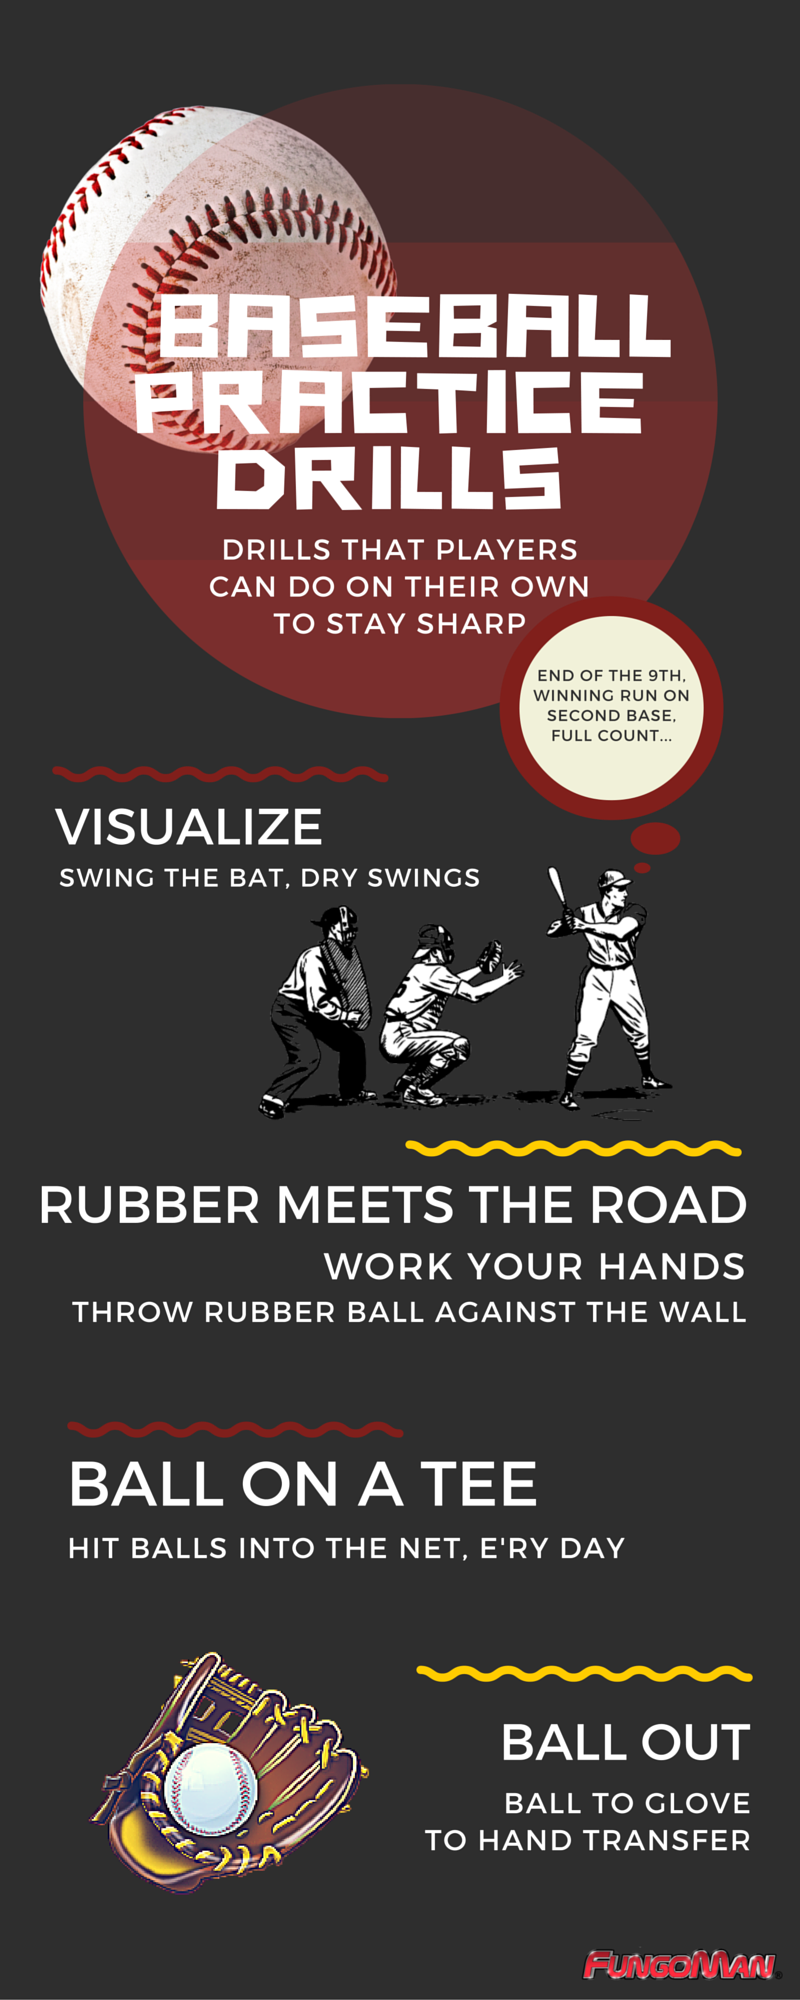 Baseball_Practice_Drills_Infographic.png